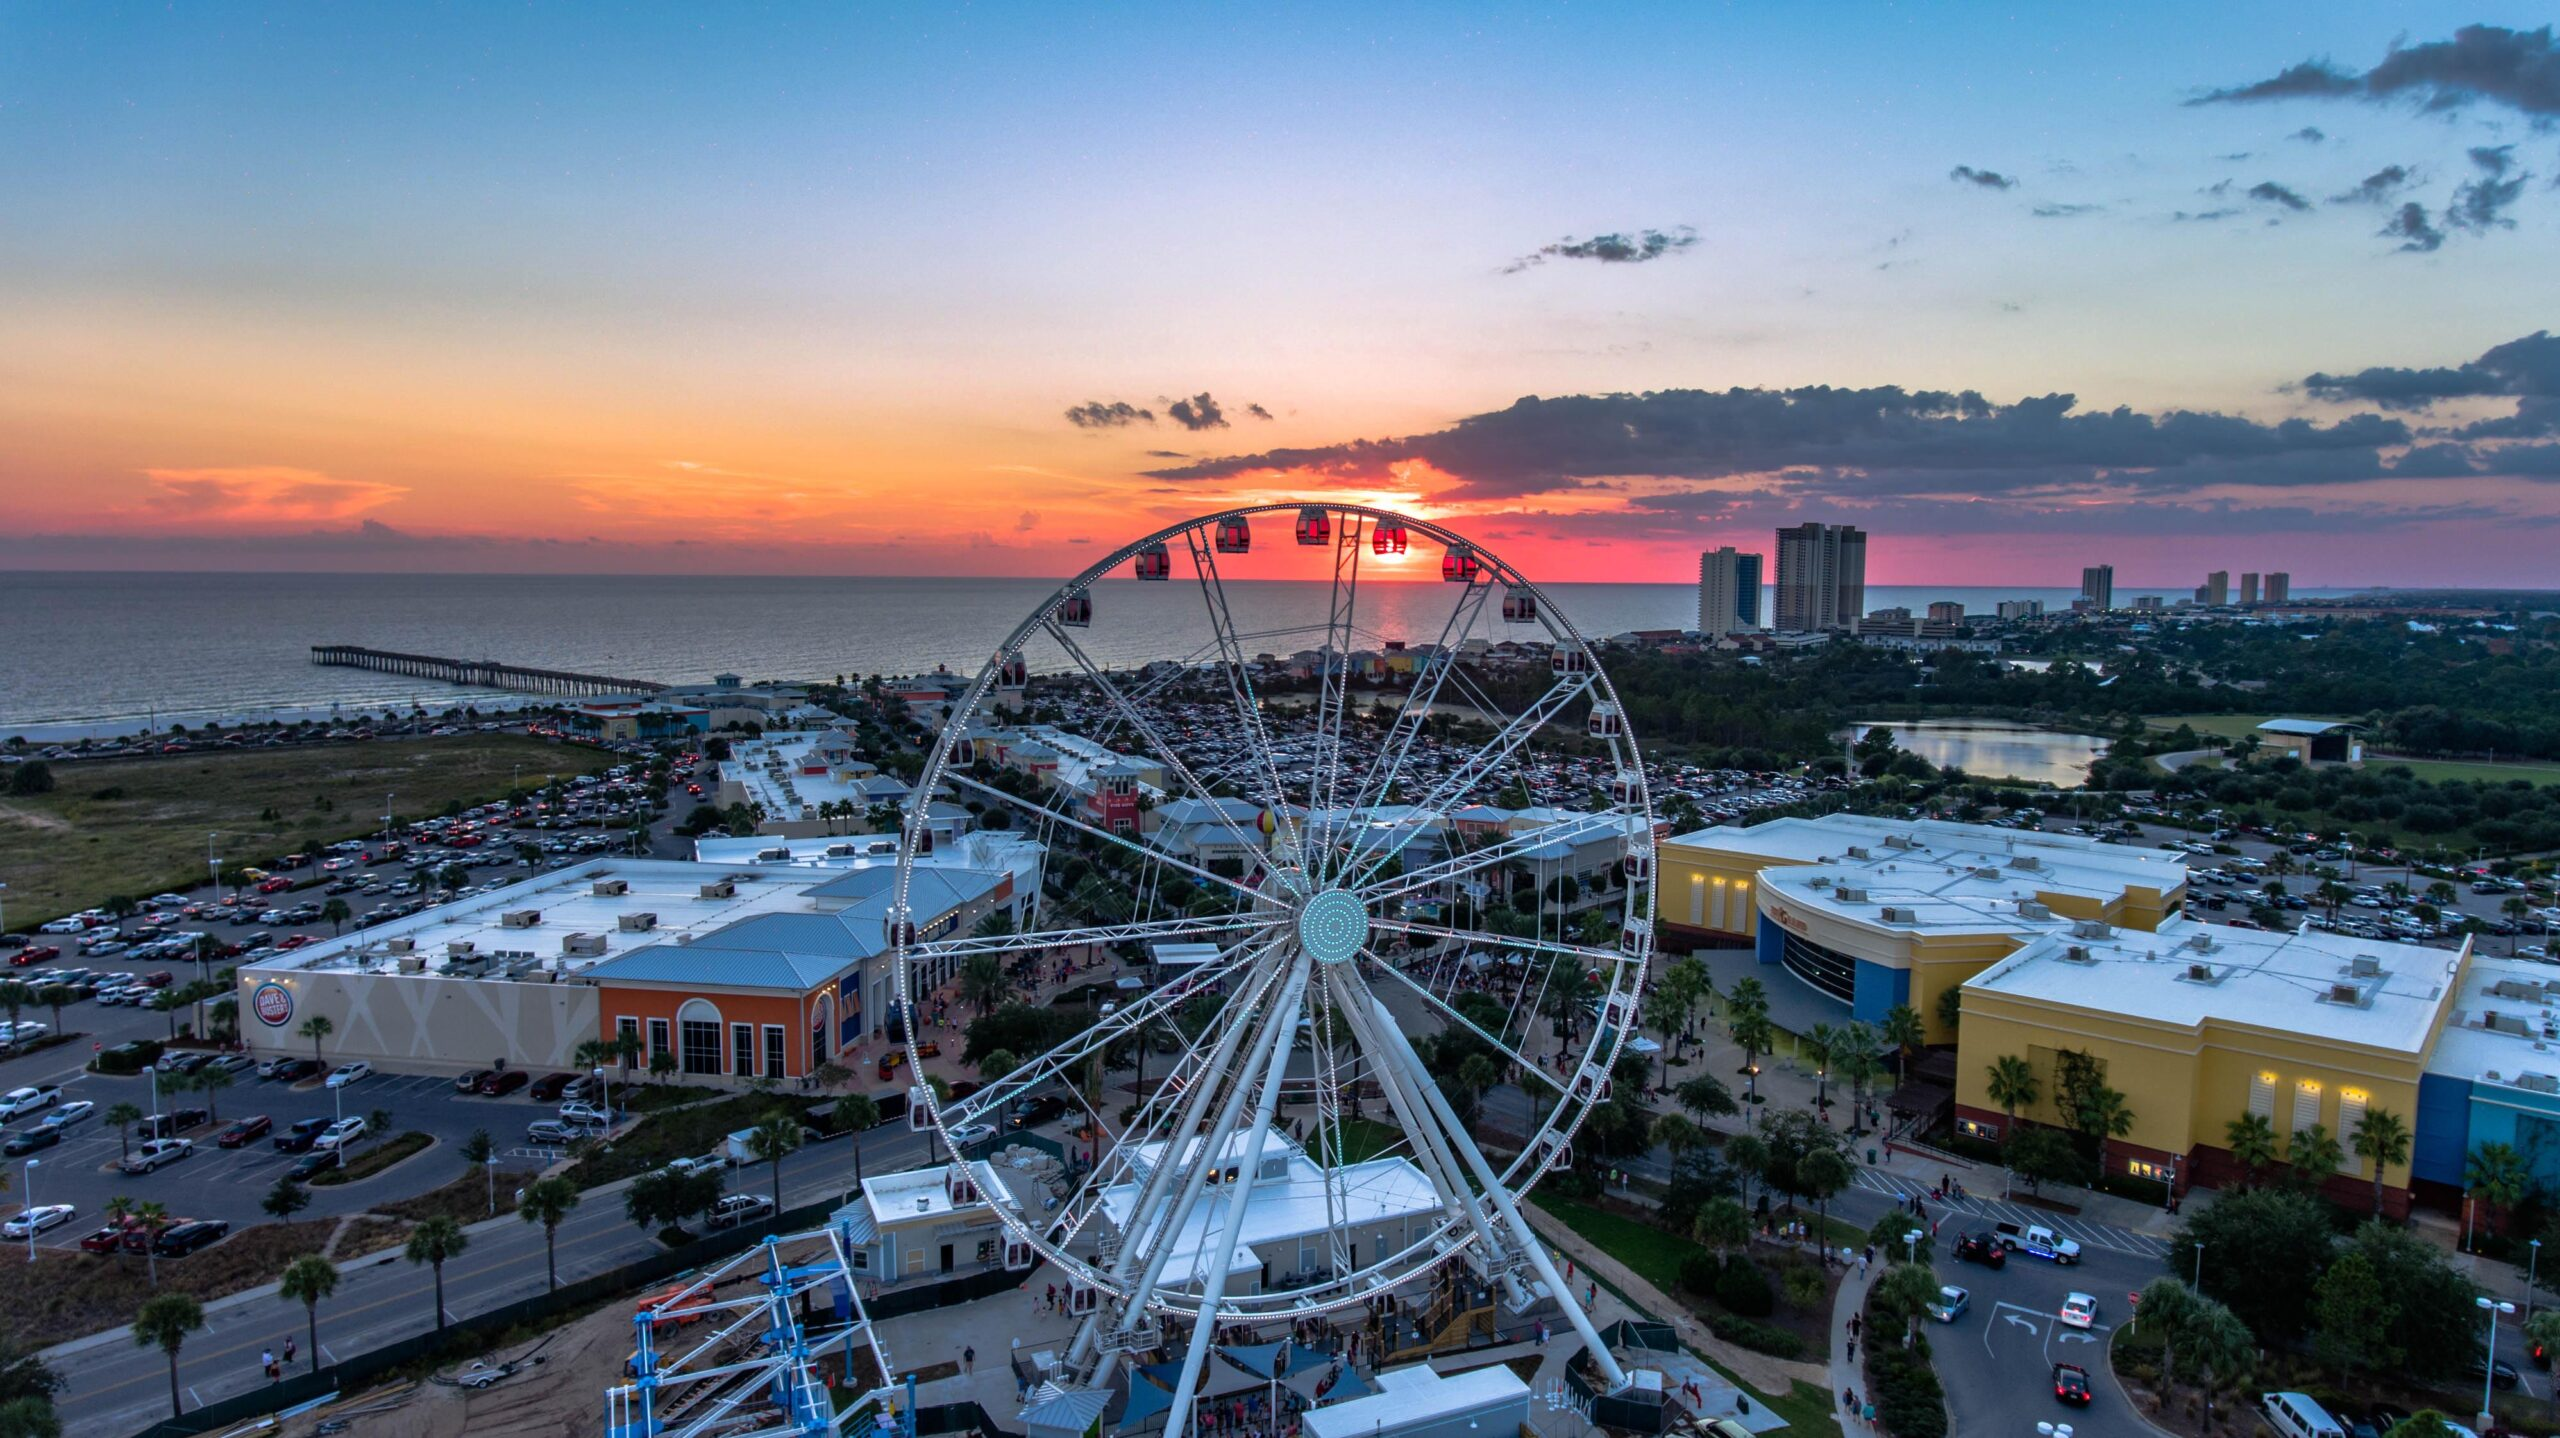 Panama City Beach Launches New Campaign with Keep PCB Beautiful